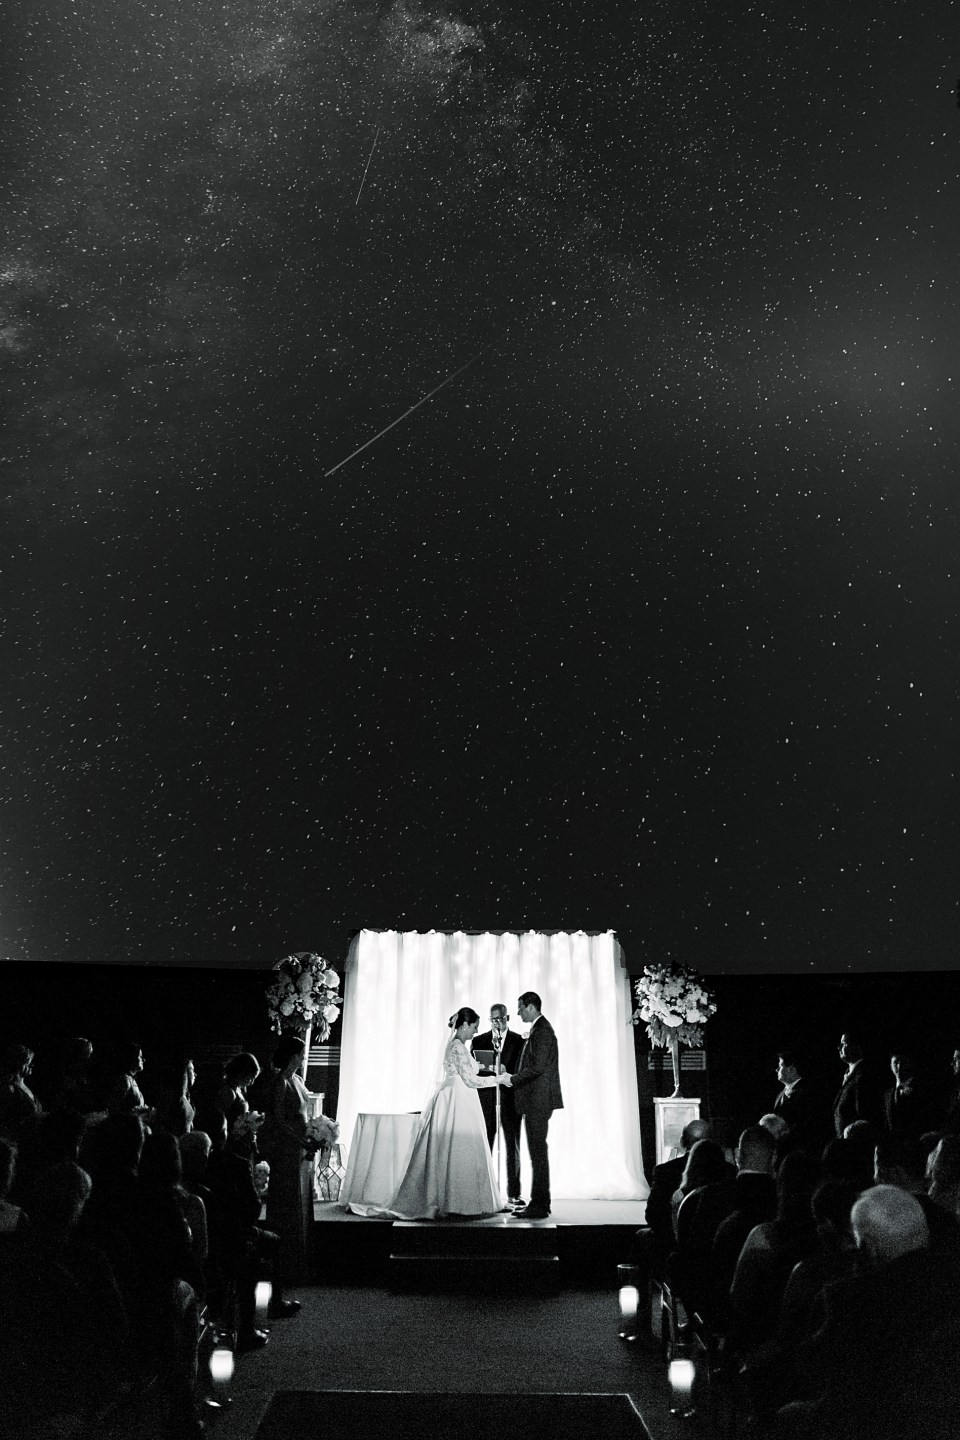 Wedding ceremony at the Franklin Institute